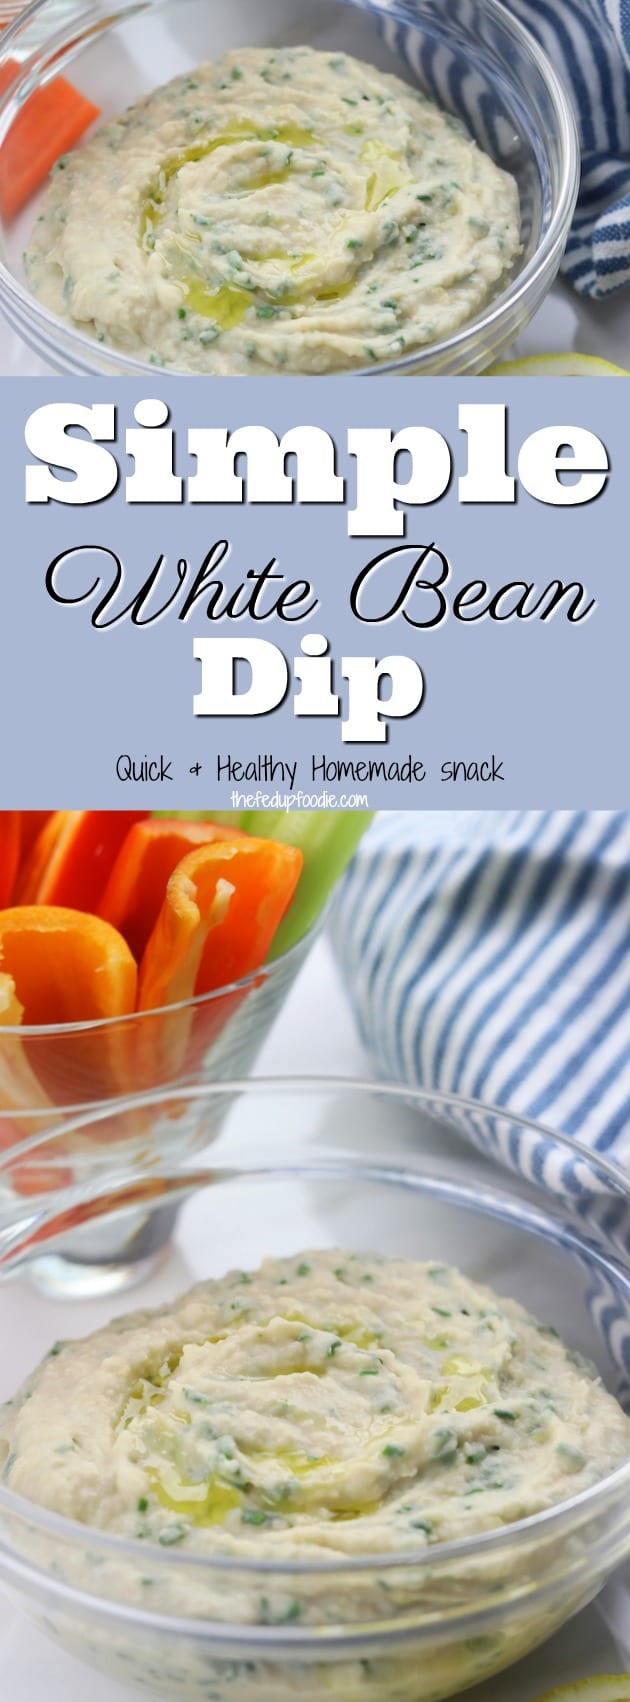 Simple White Bean Dip is a quick and healthy recipe perfect as an appetizer for a party or a fast afternoon snack. This recipe is so delicious you may find yourself craving this as a feel good lunch also.